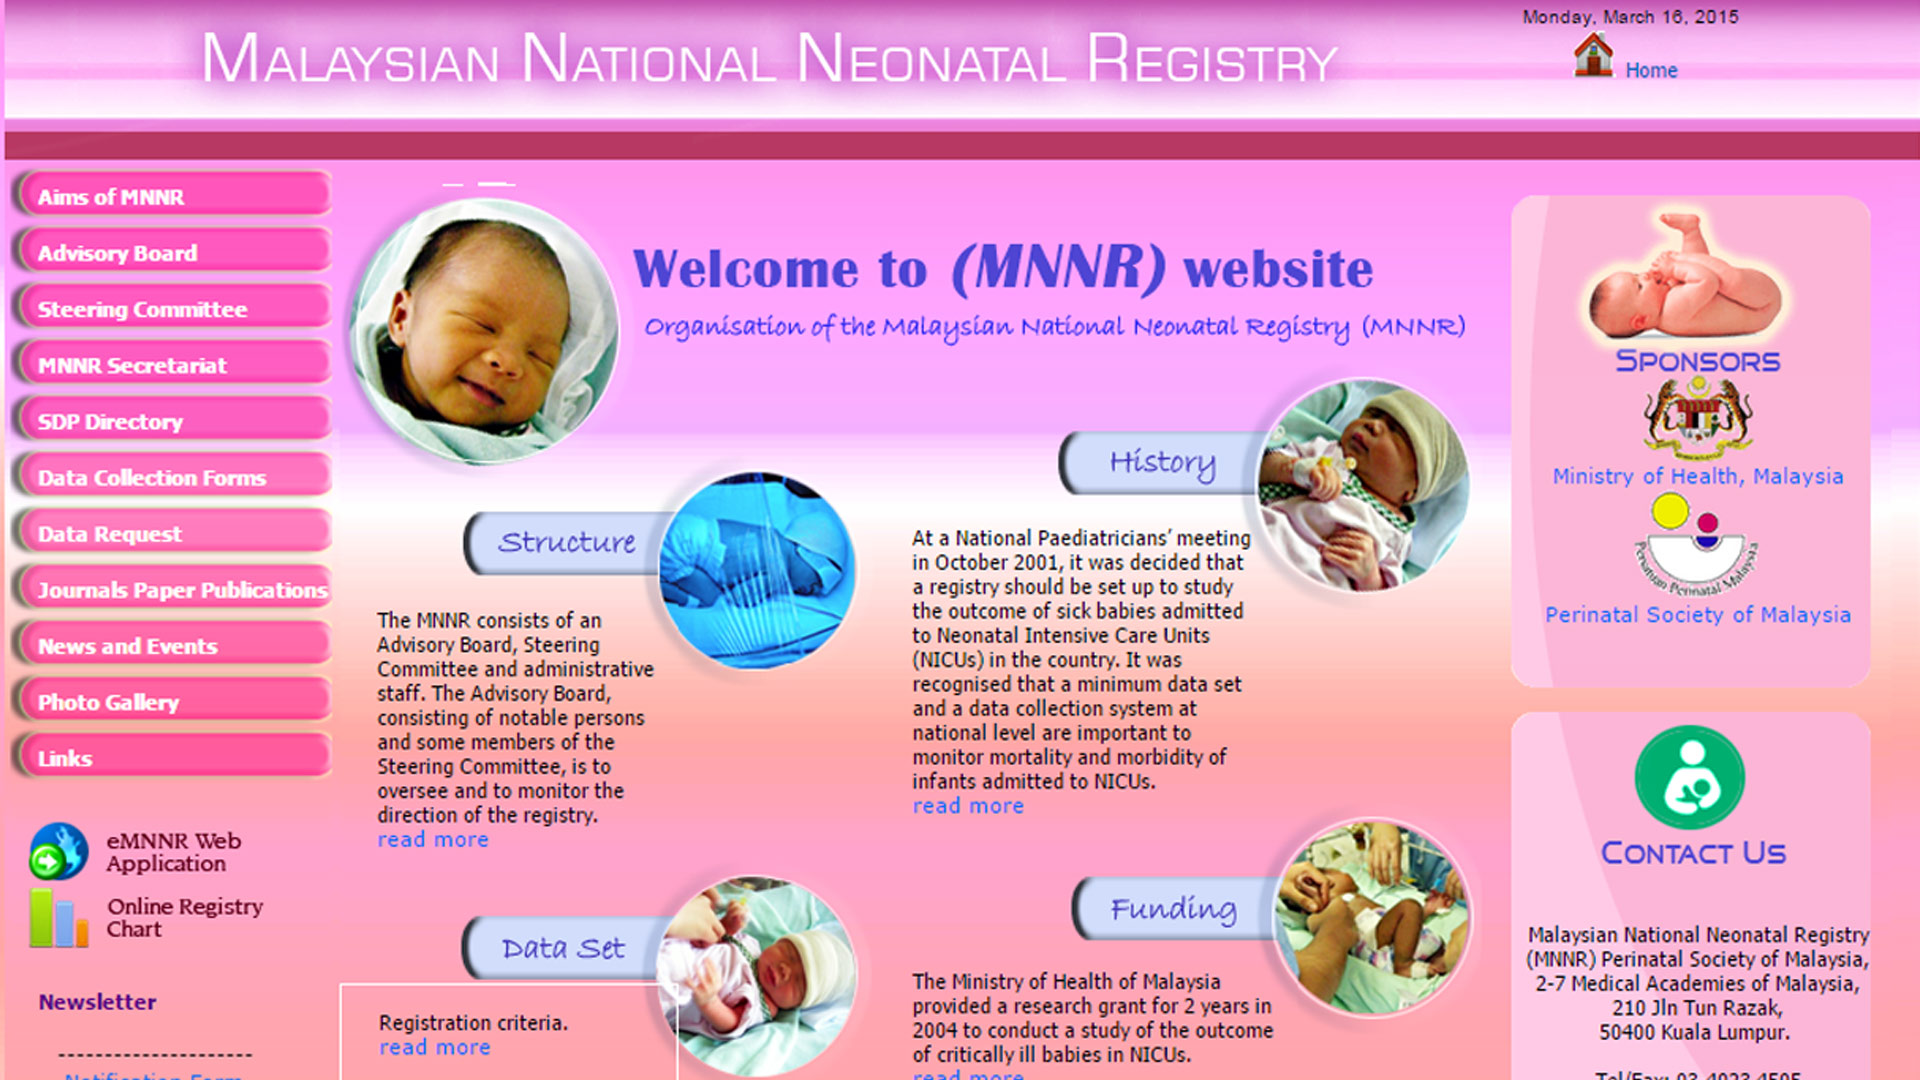 Malaysian National Neonatal Registry website